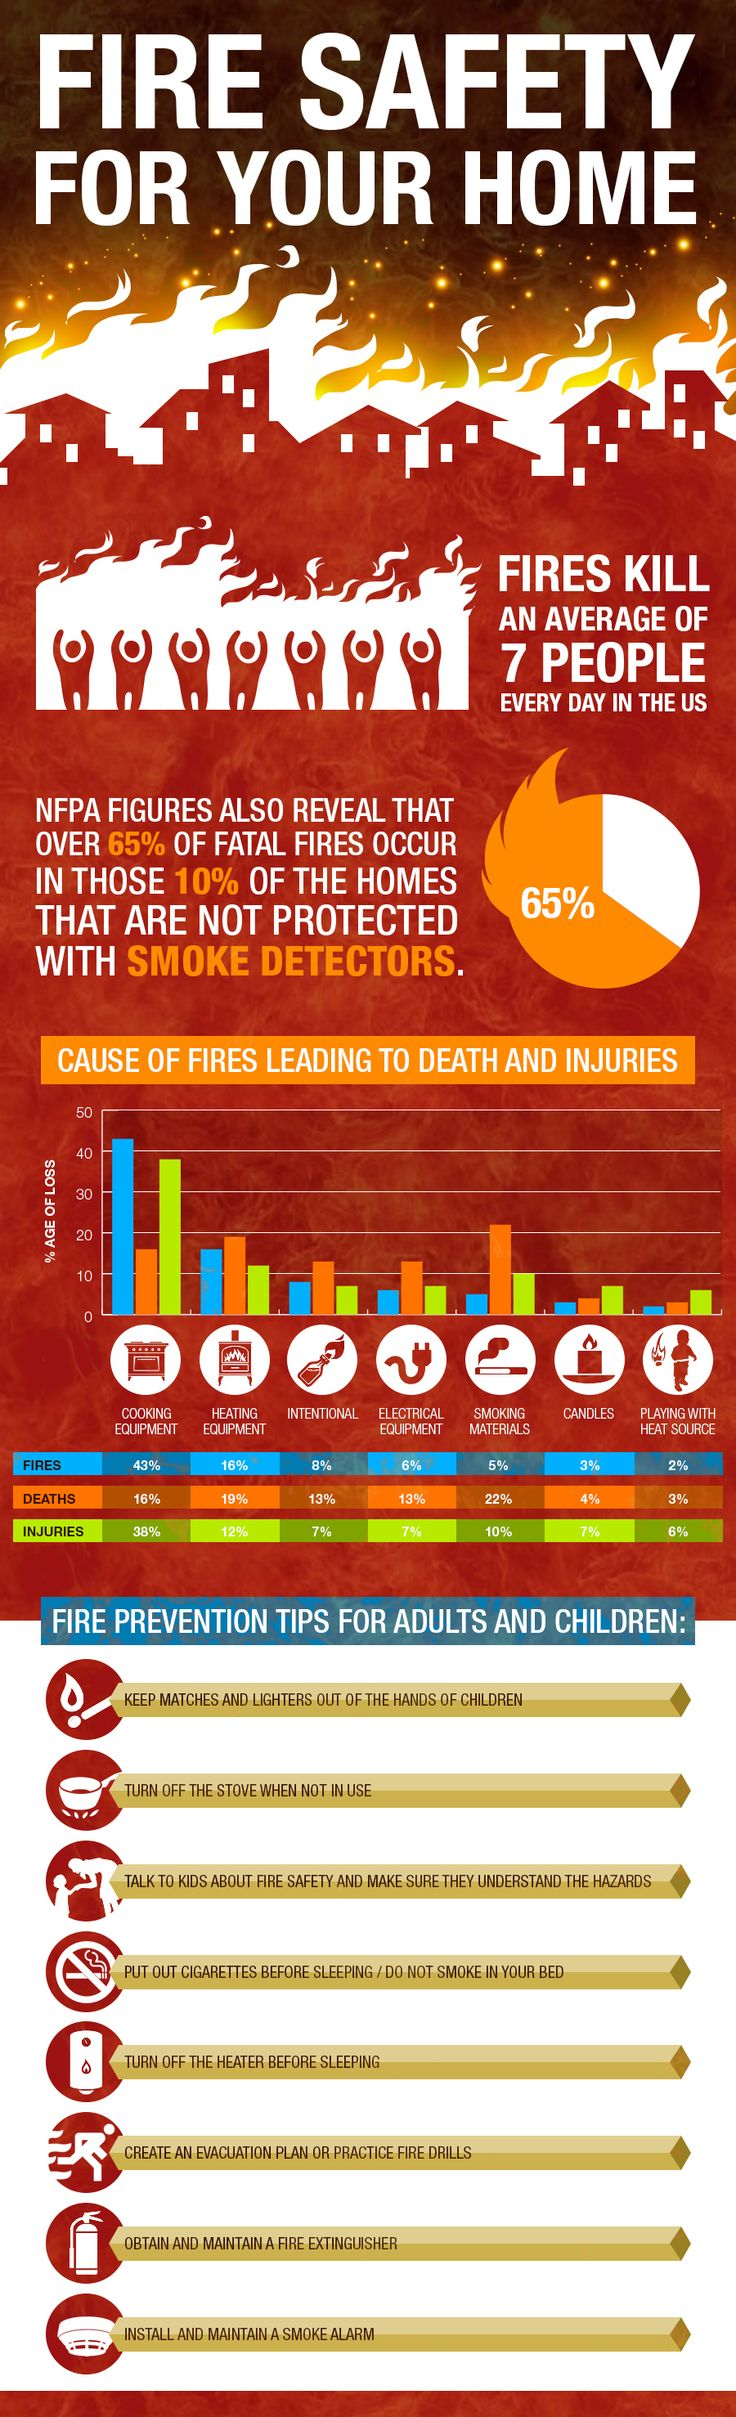 IS YOUR HOME SAFE FROM FIRE?